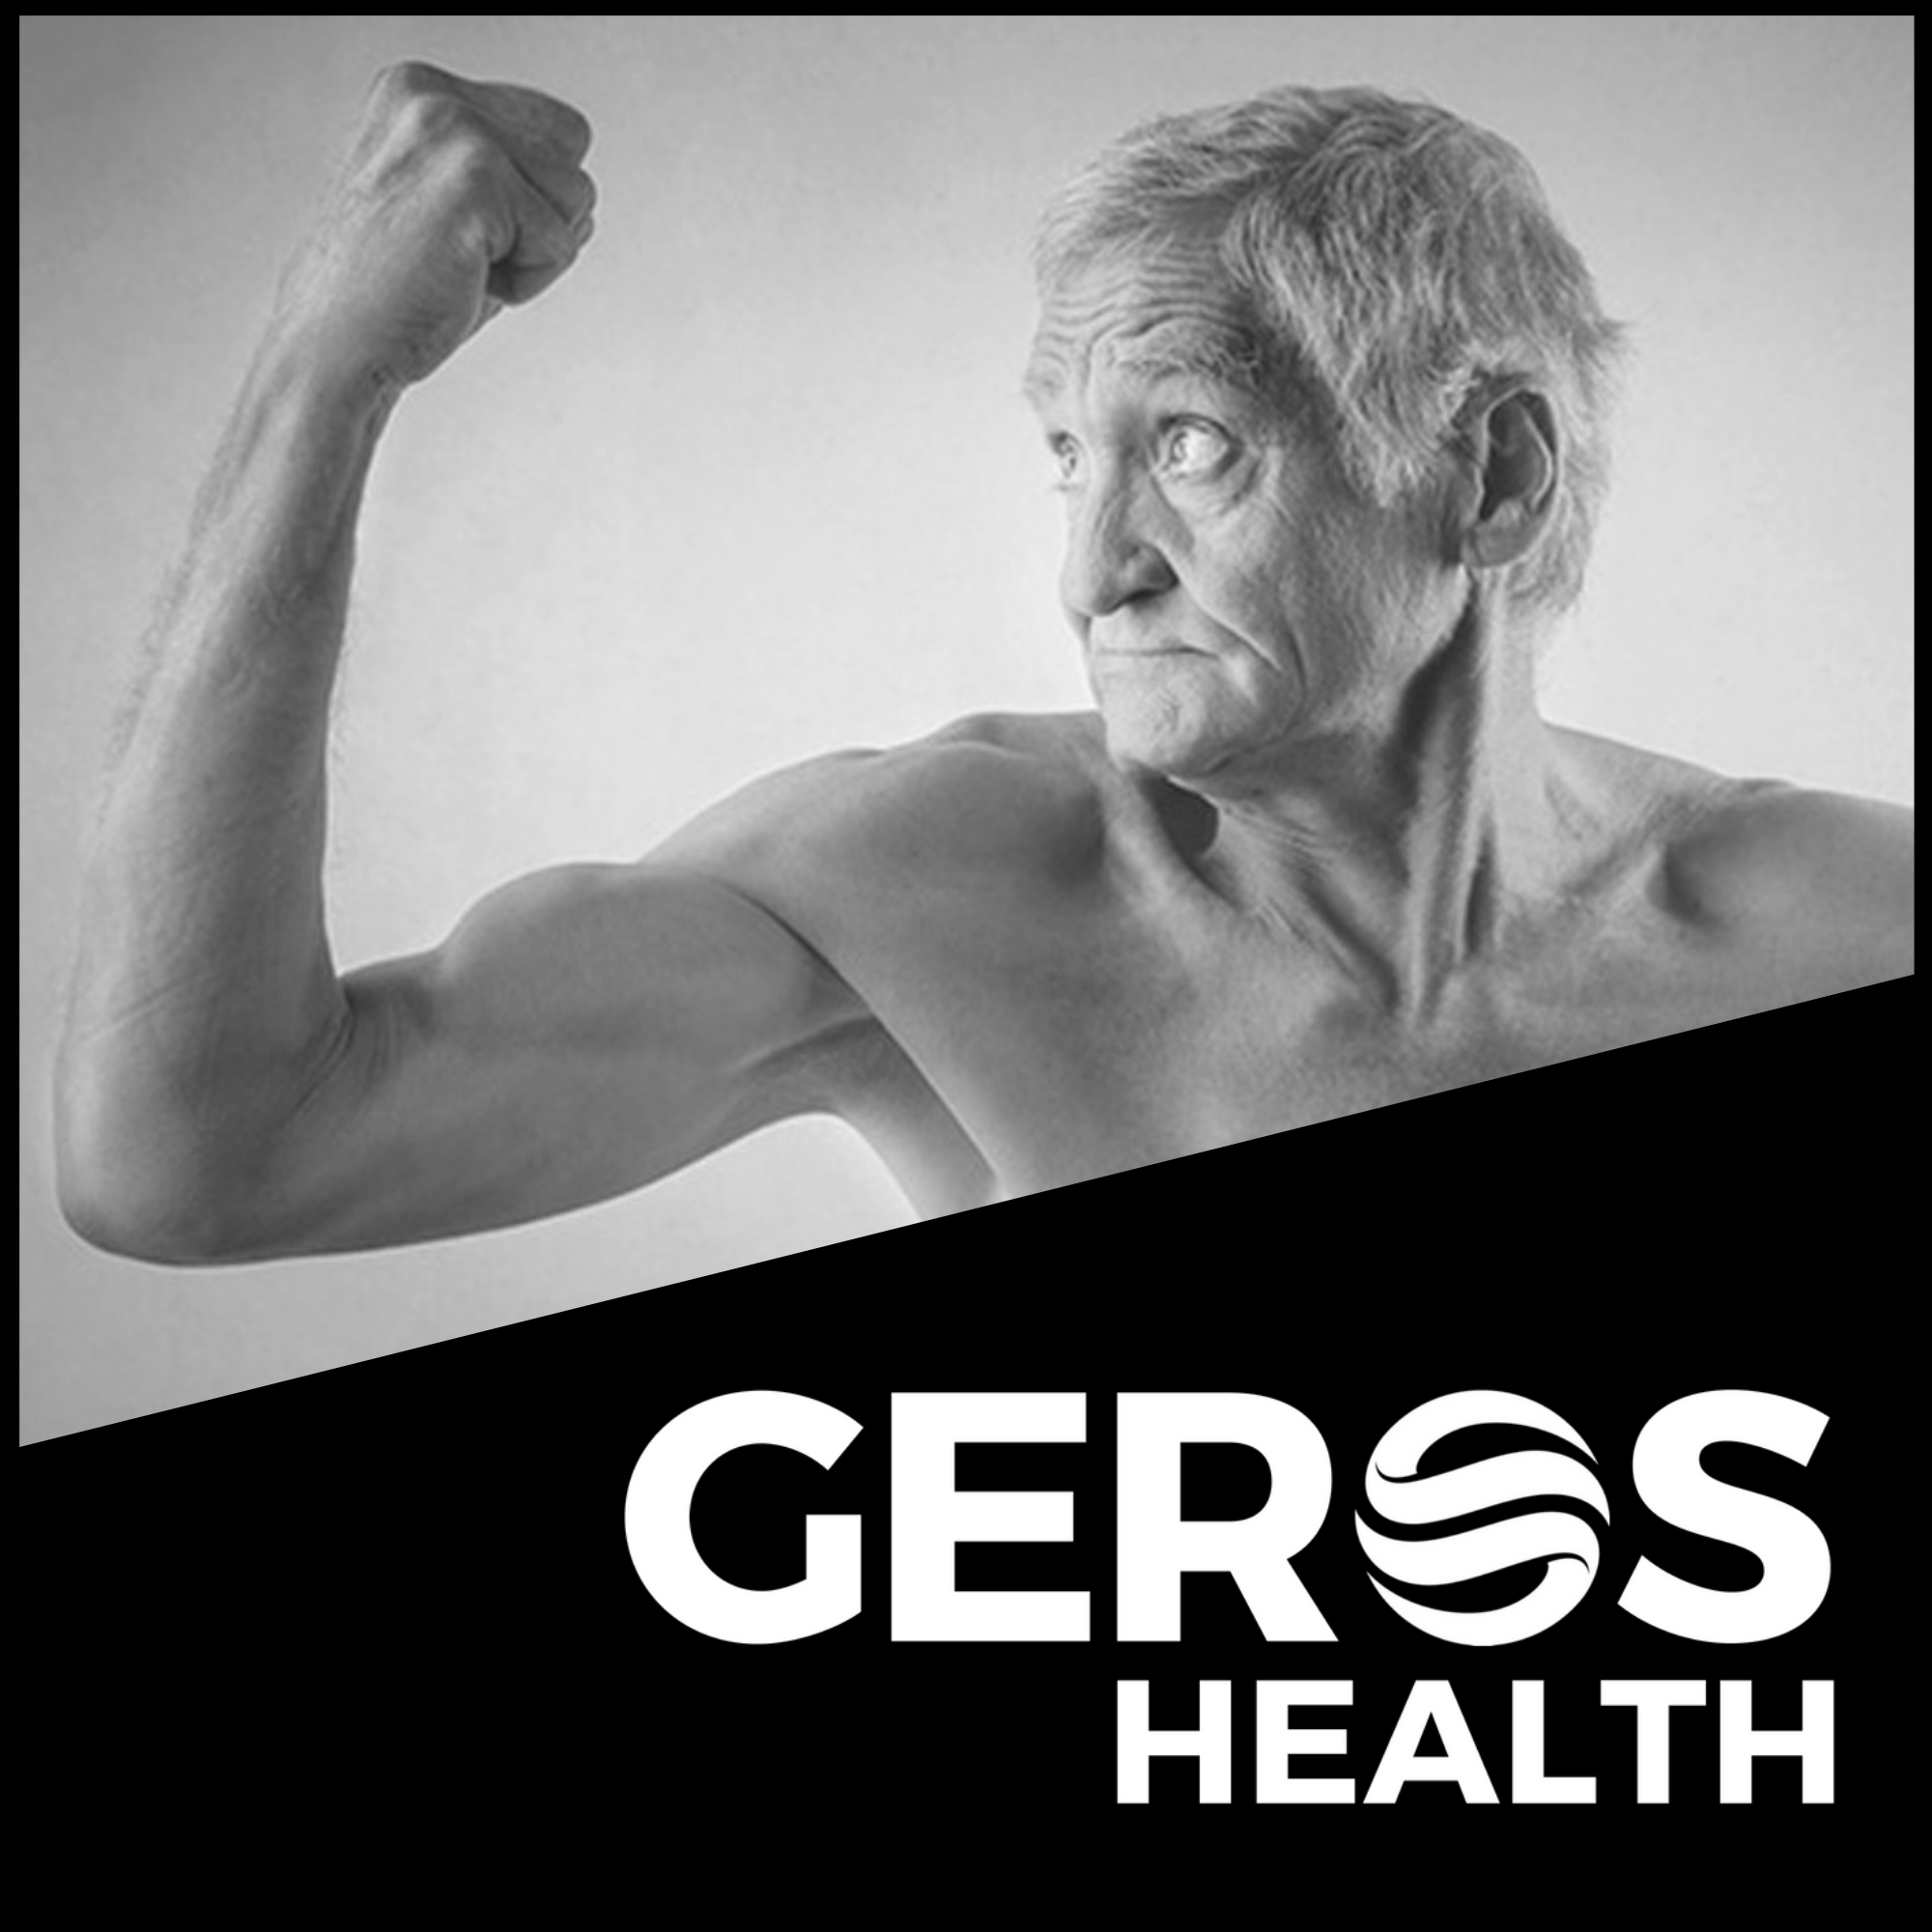 GEROS Health - Physical Therapy | Fitness | Geriatrics on